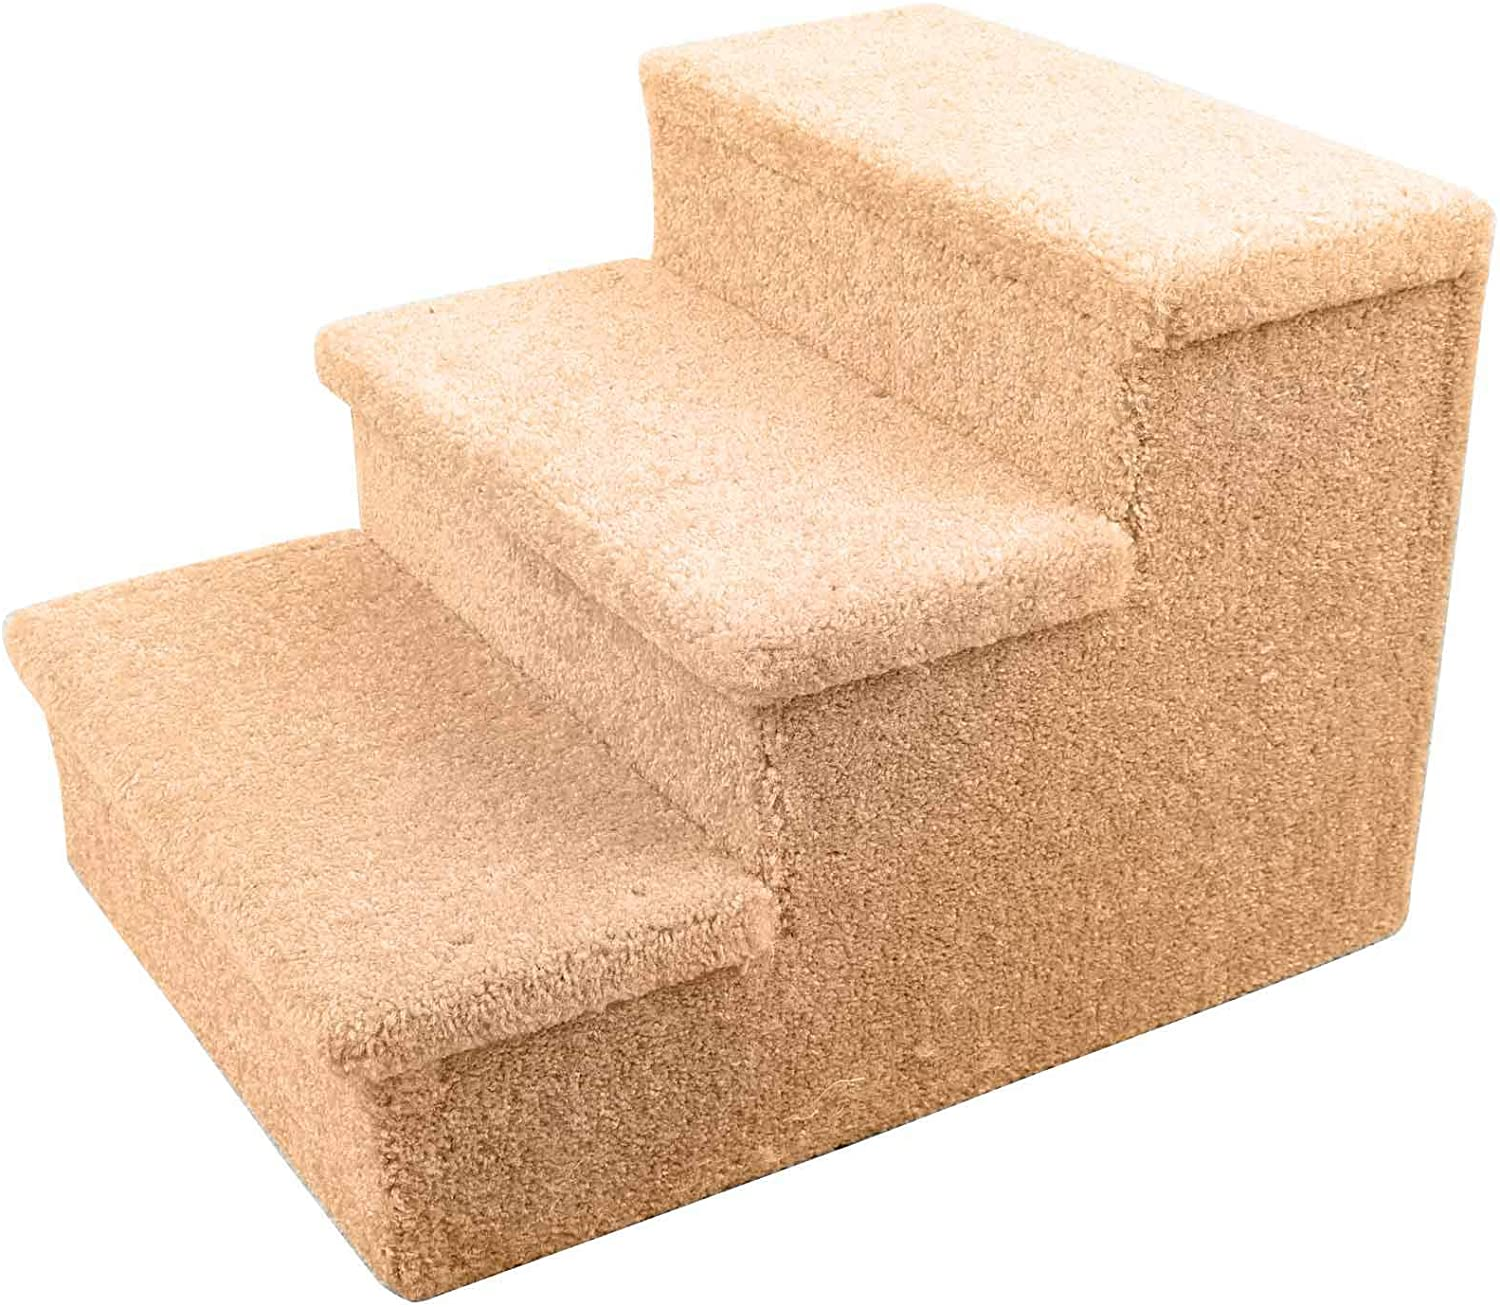 Penn-Plax 3 Step Carpeted Pet Stairs for Both Cats and Dogs Holds Up to 150 LBS 12.75 Inches High, Beige : Pet Supplies